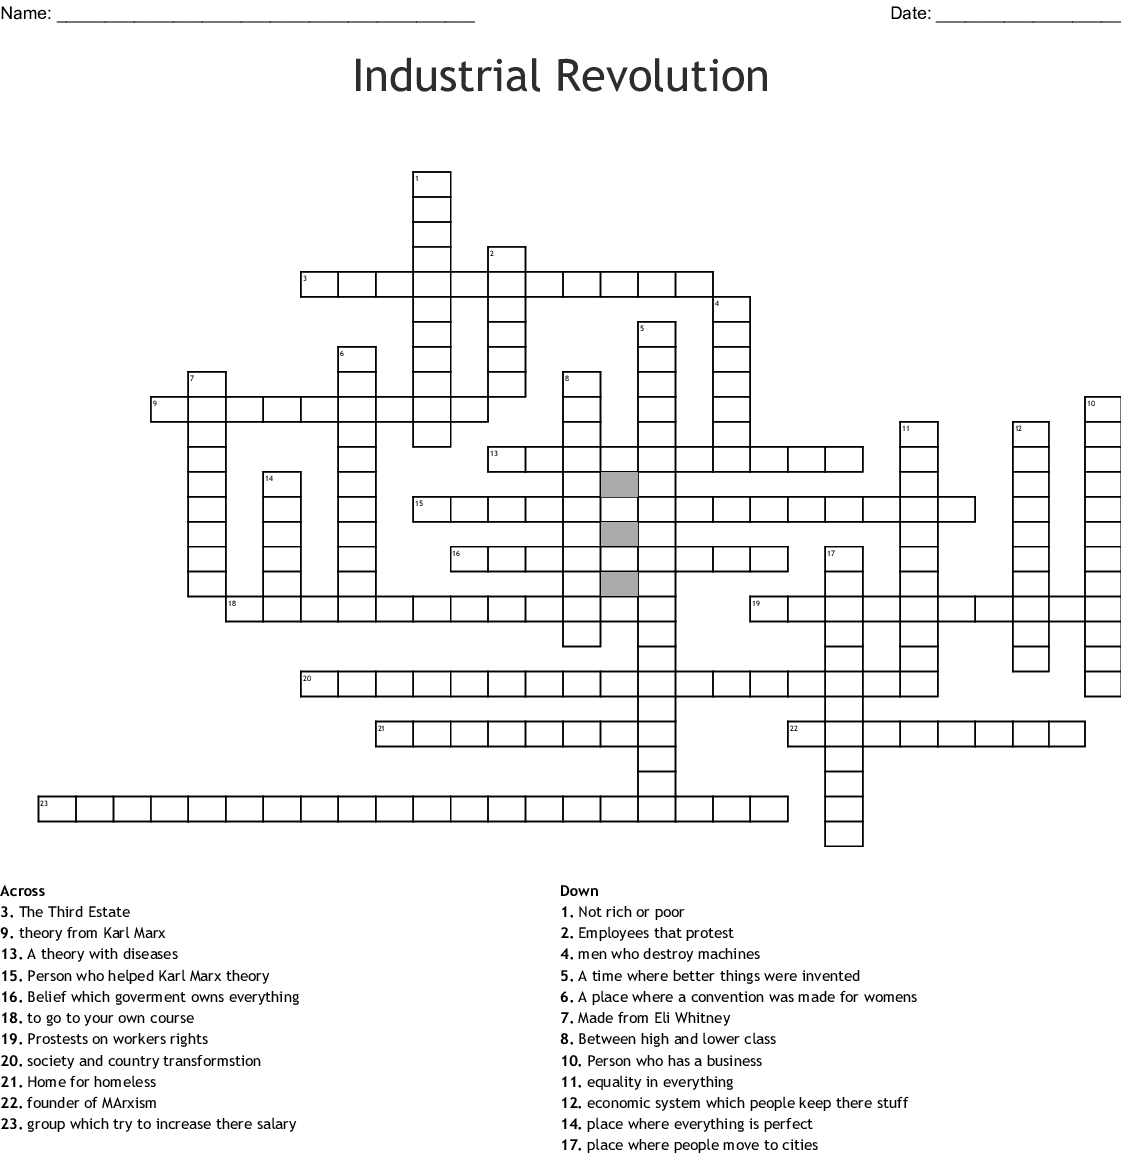 The Second Industrial Revolution Worksheet Answers